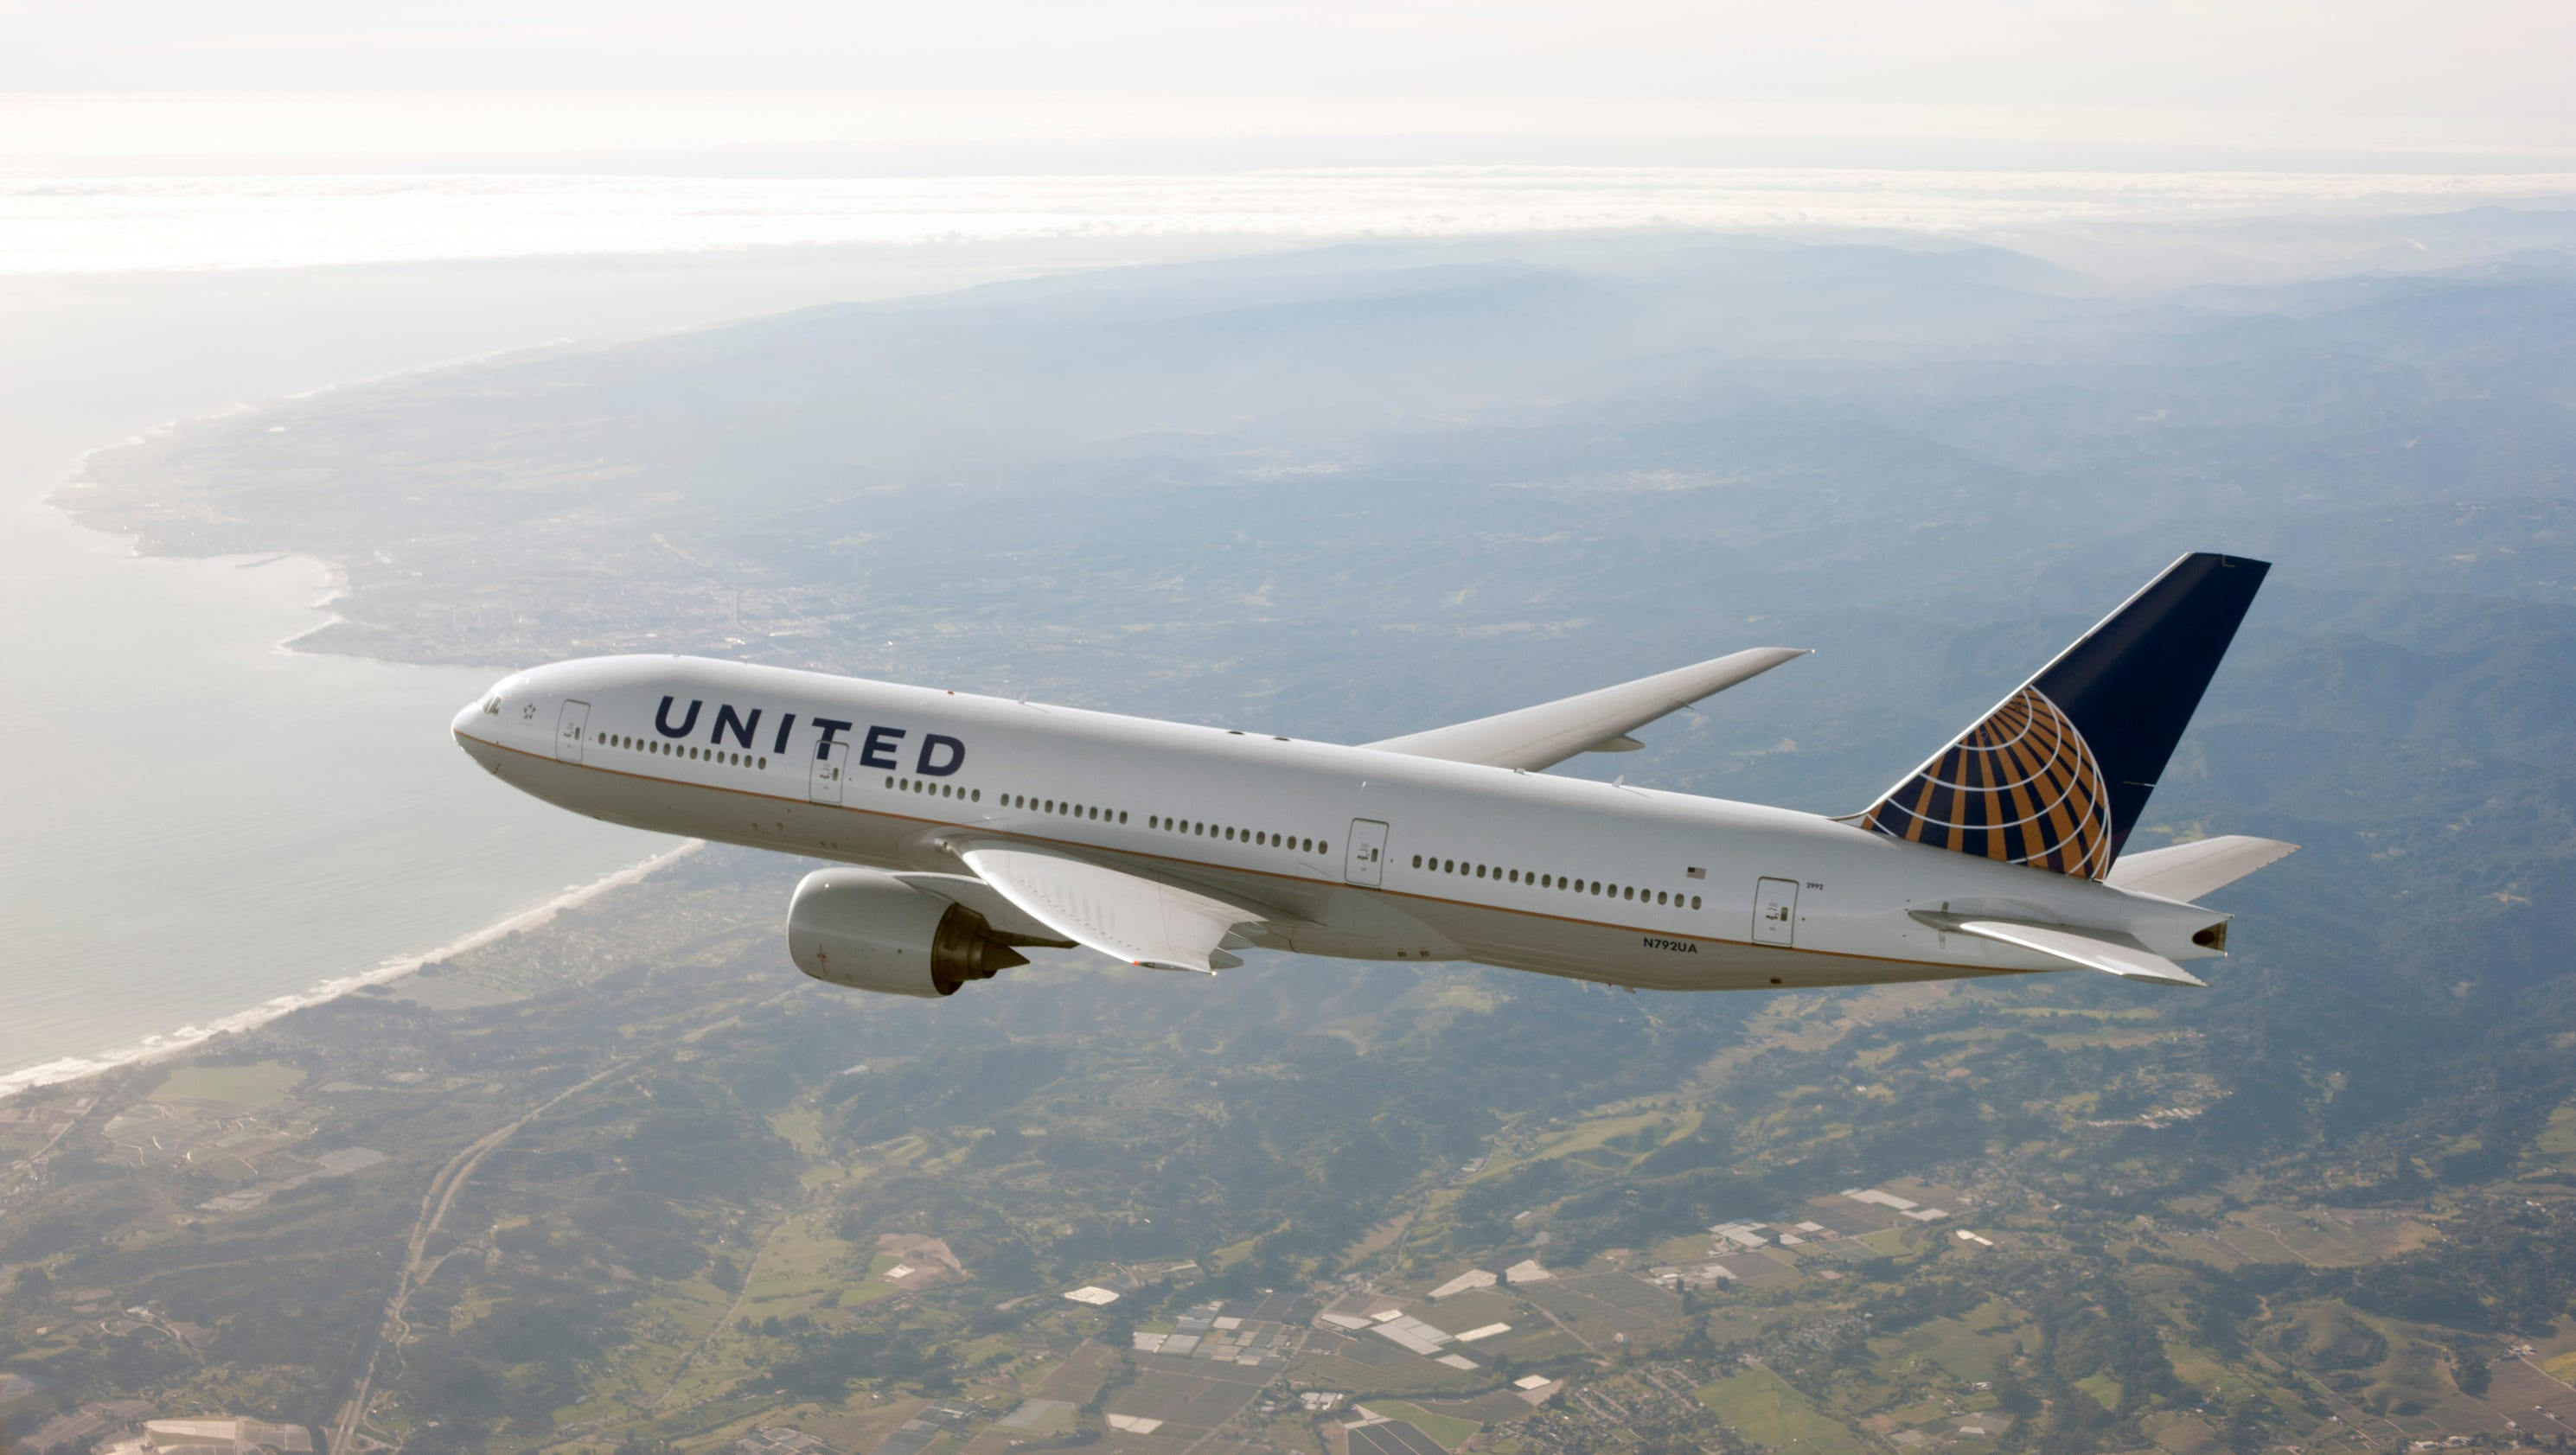 United\'s new Boeing 777-300ER jets will debut in February